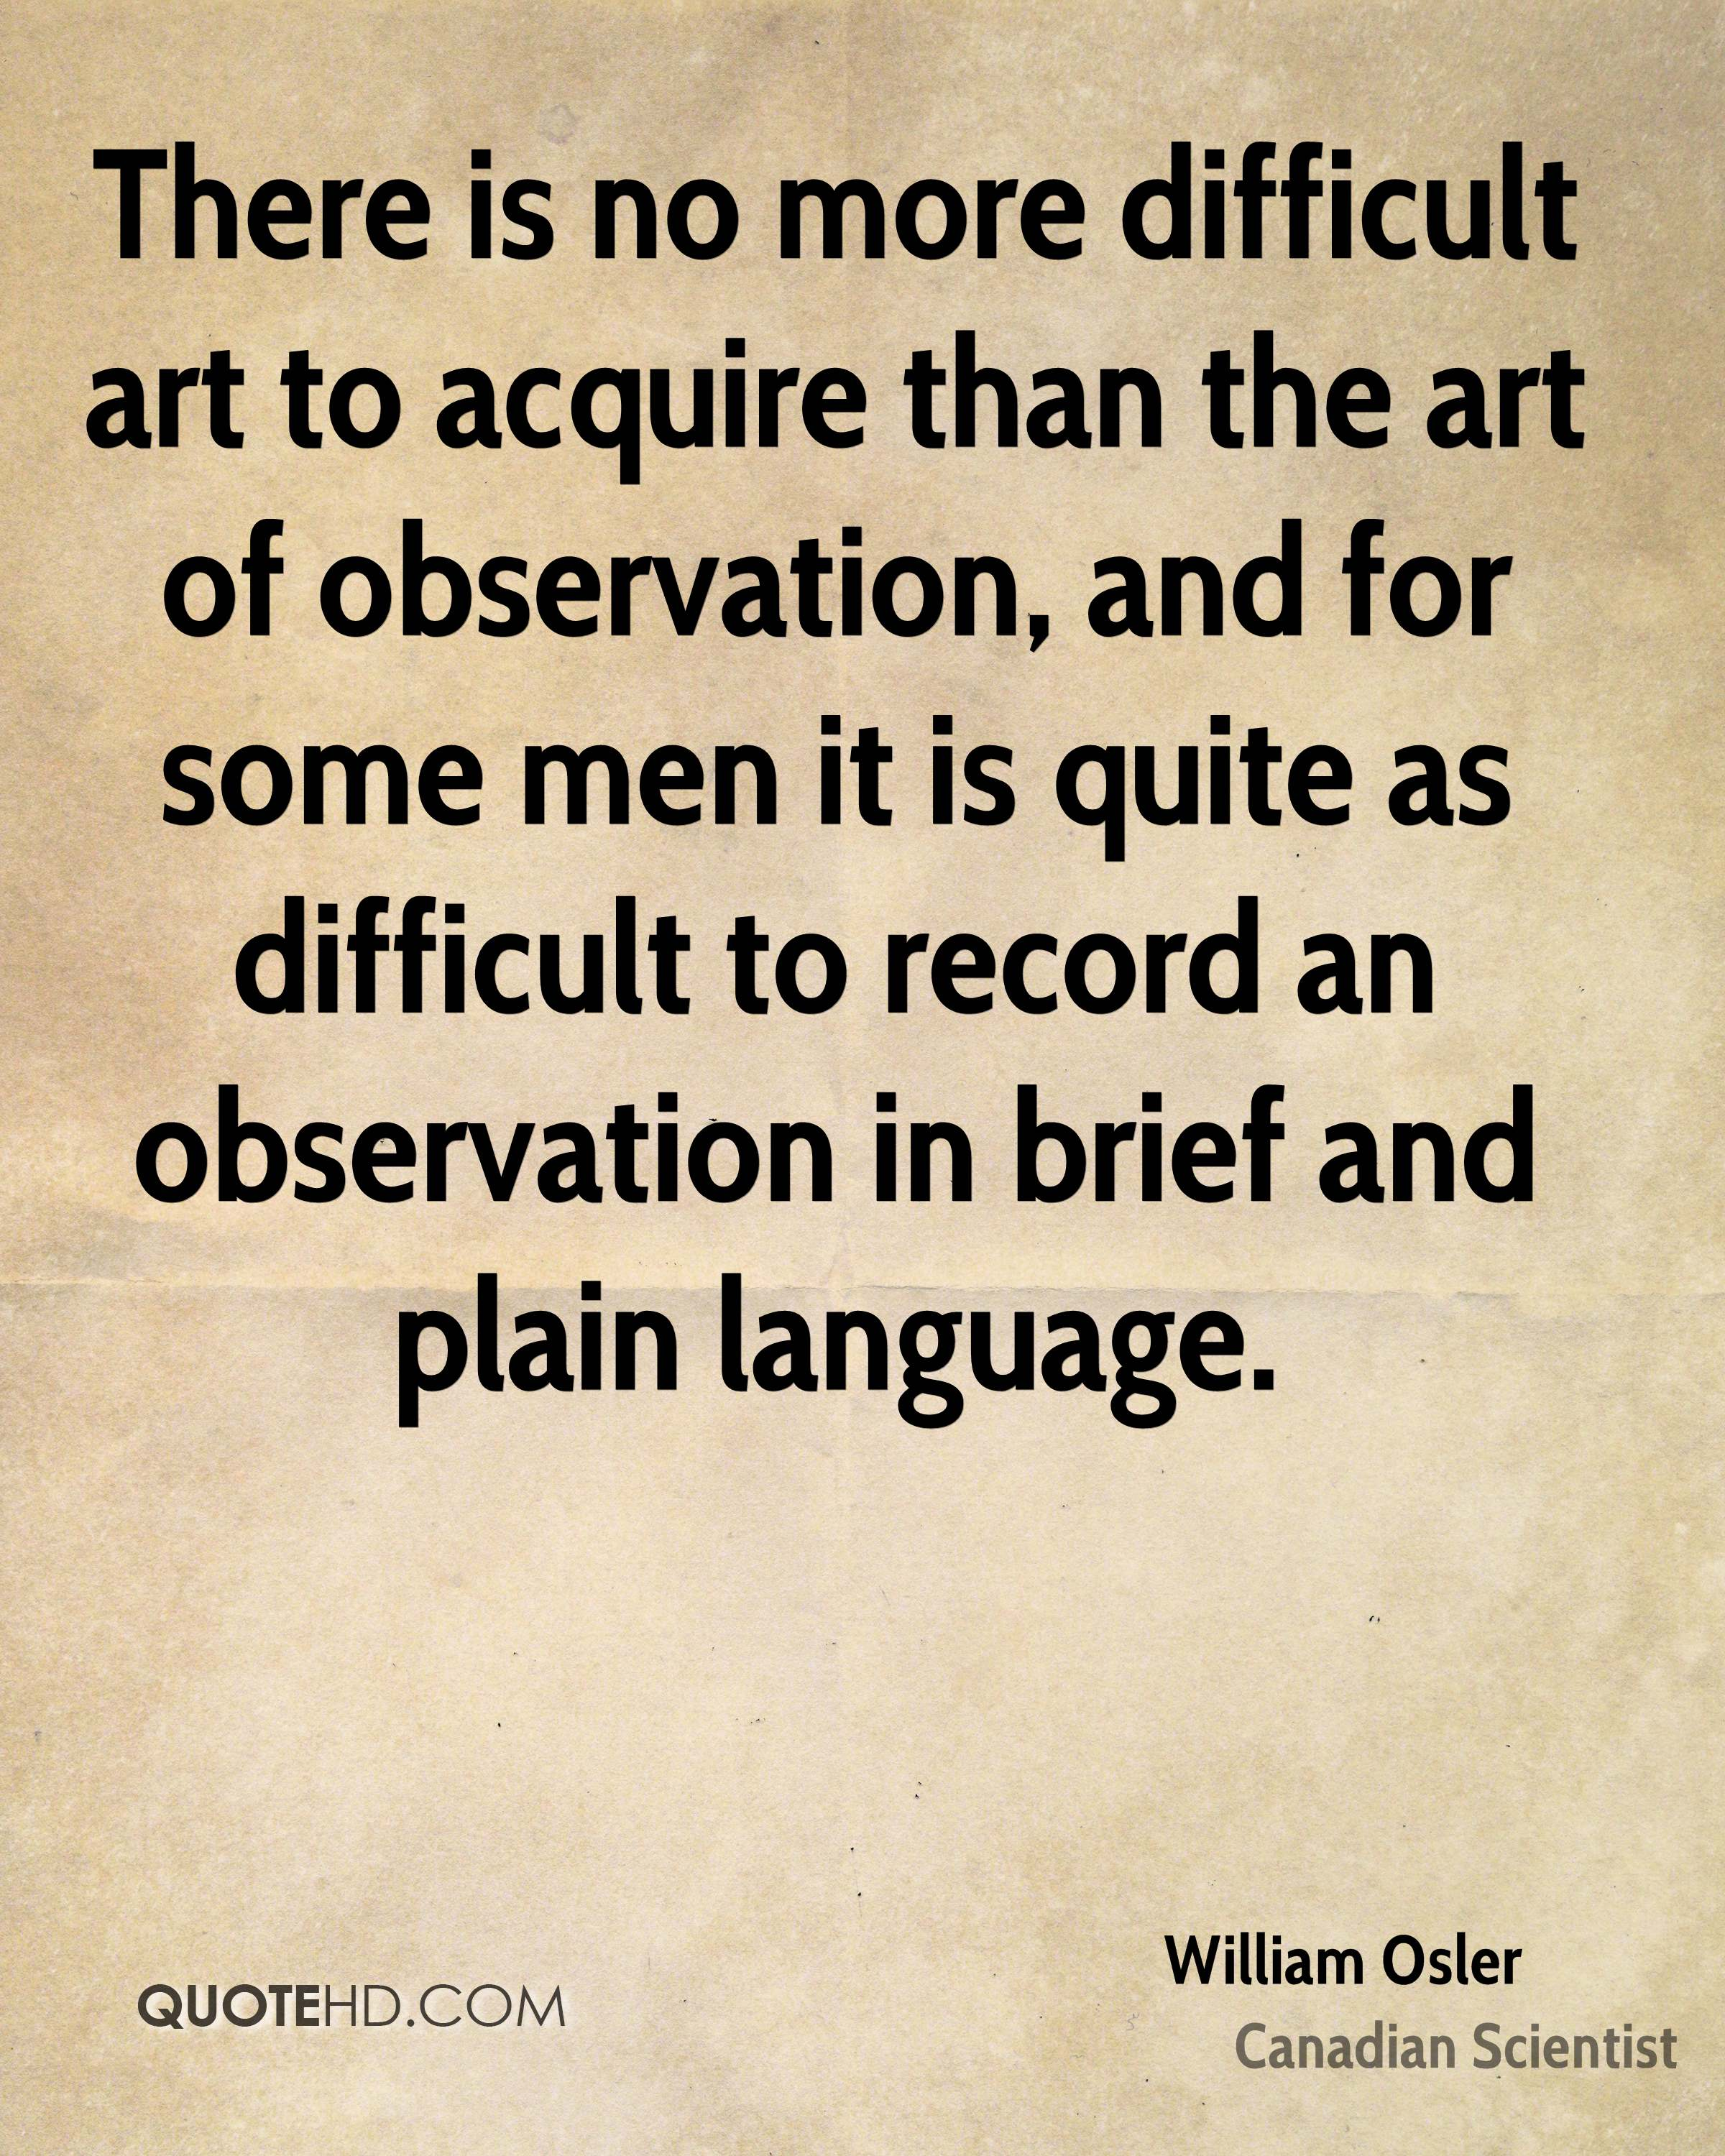 There is no more difficult art to acquire than the art of observation, and for some men it is quite as difficult to record an observation in brief and plain language.